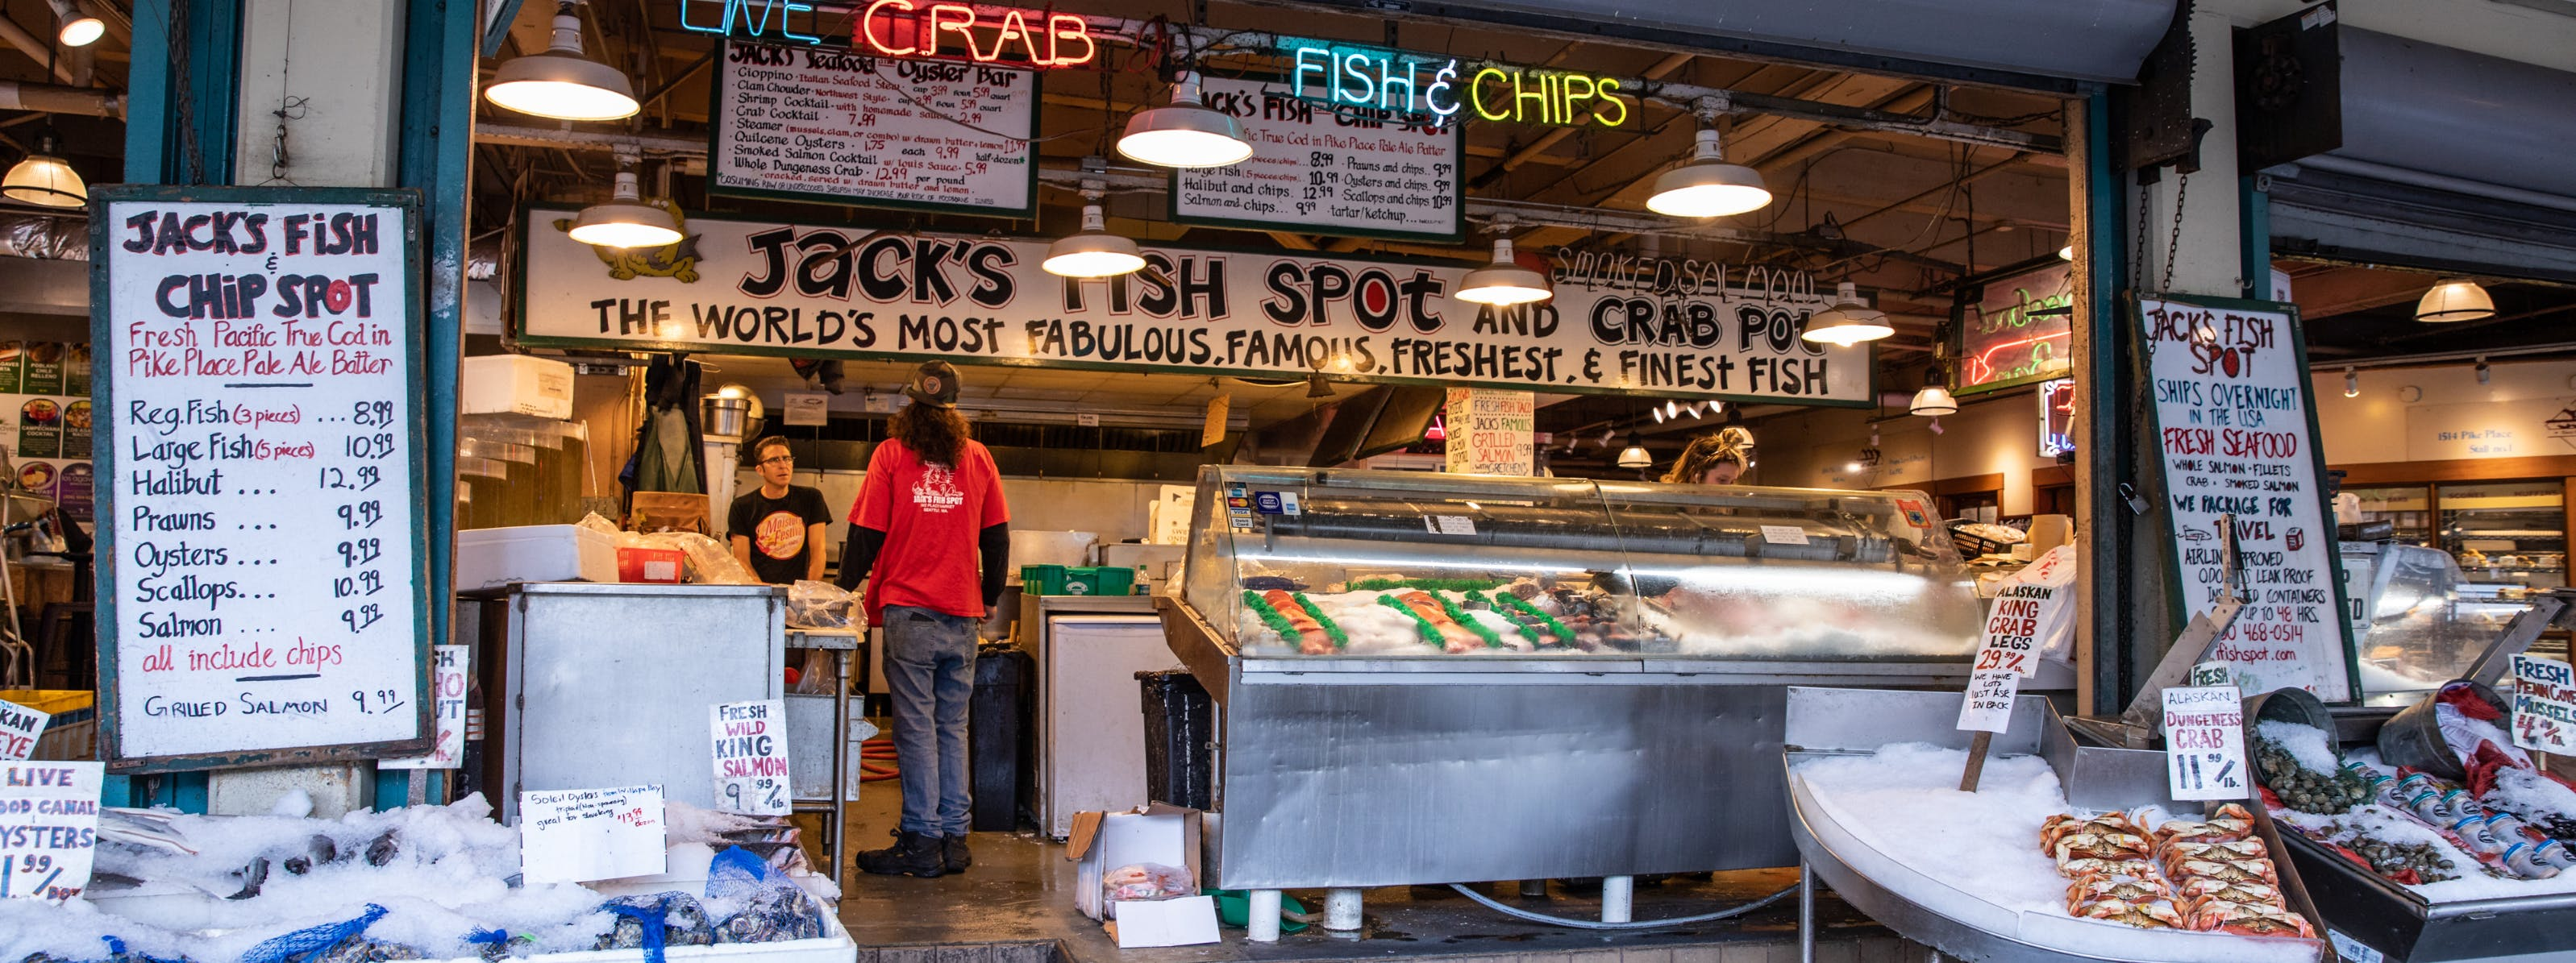 16 Seafood Markets In Seattle To Check Out - Seattle - The Infatuation